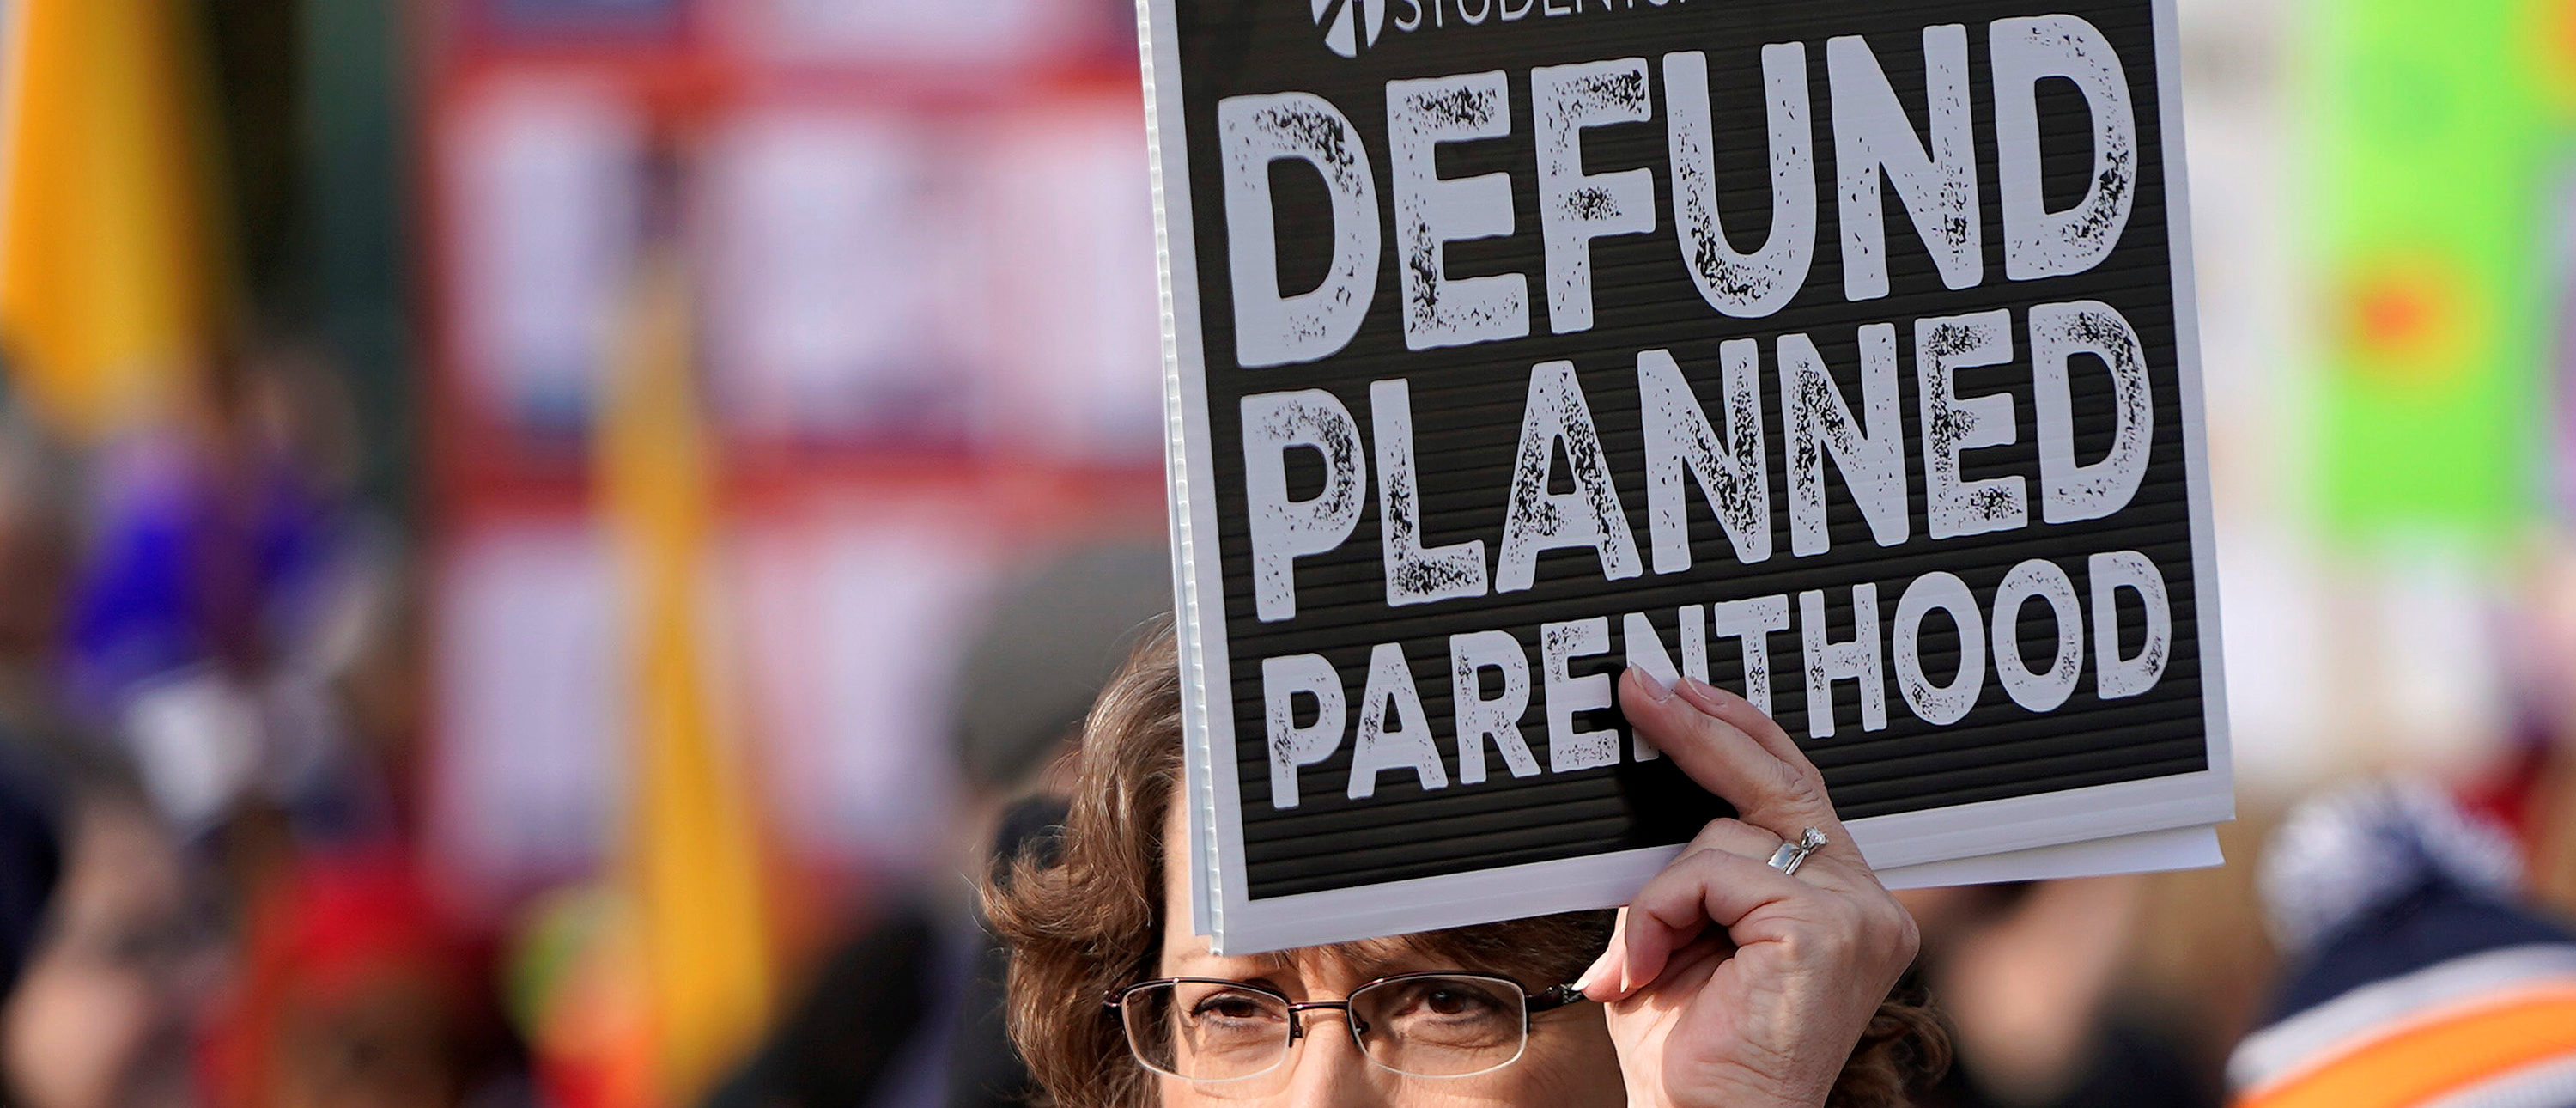 An anti-abortion marcher carries a sign calling for the organisation Planned Parenthood to loose funding, during in the 46th annual March for Life at the Supreme Court in Washington, U.S., January 18, 2019. REUTERS/Joshua Roberts